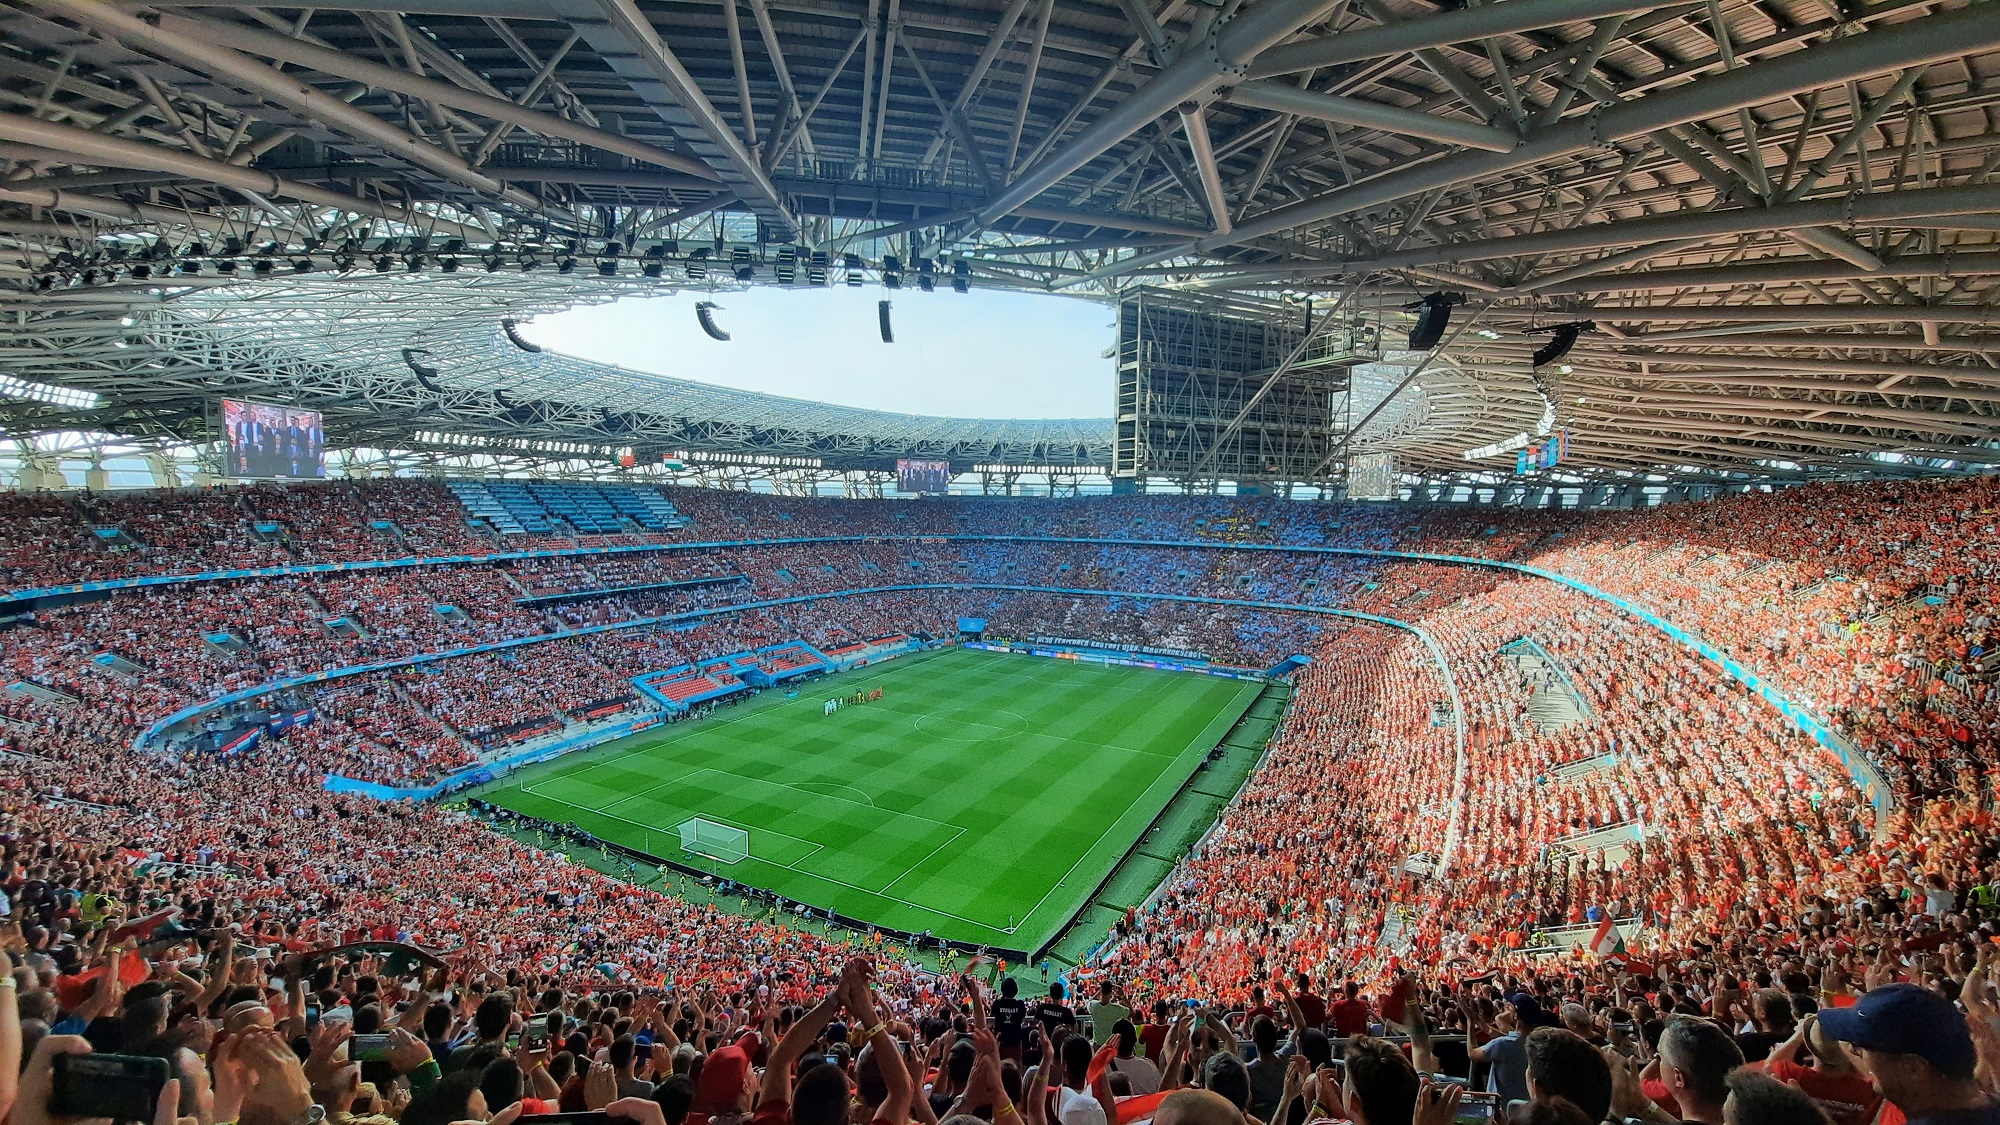 EURO 2020 was a big success in the Puskás Arena